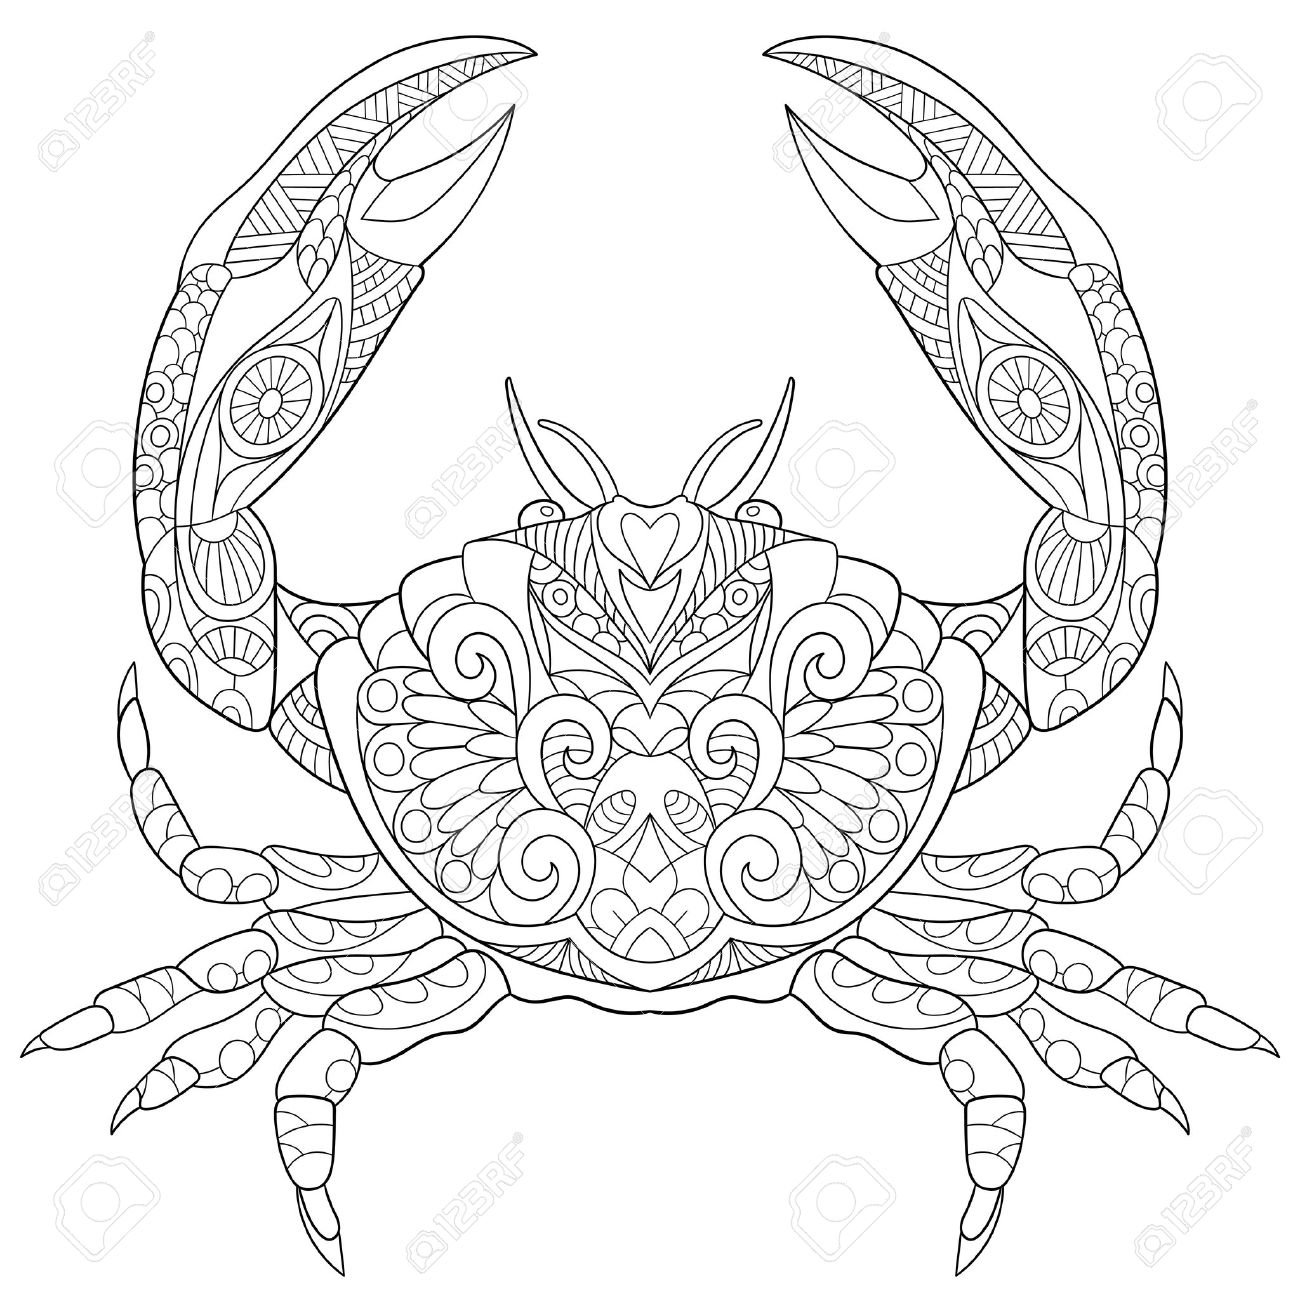 Lionfish Coloring Page. Cool Lionfish Coloring Page Watering Can ...